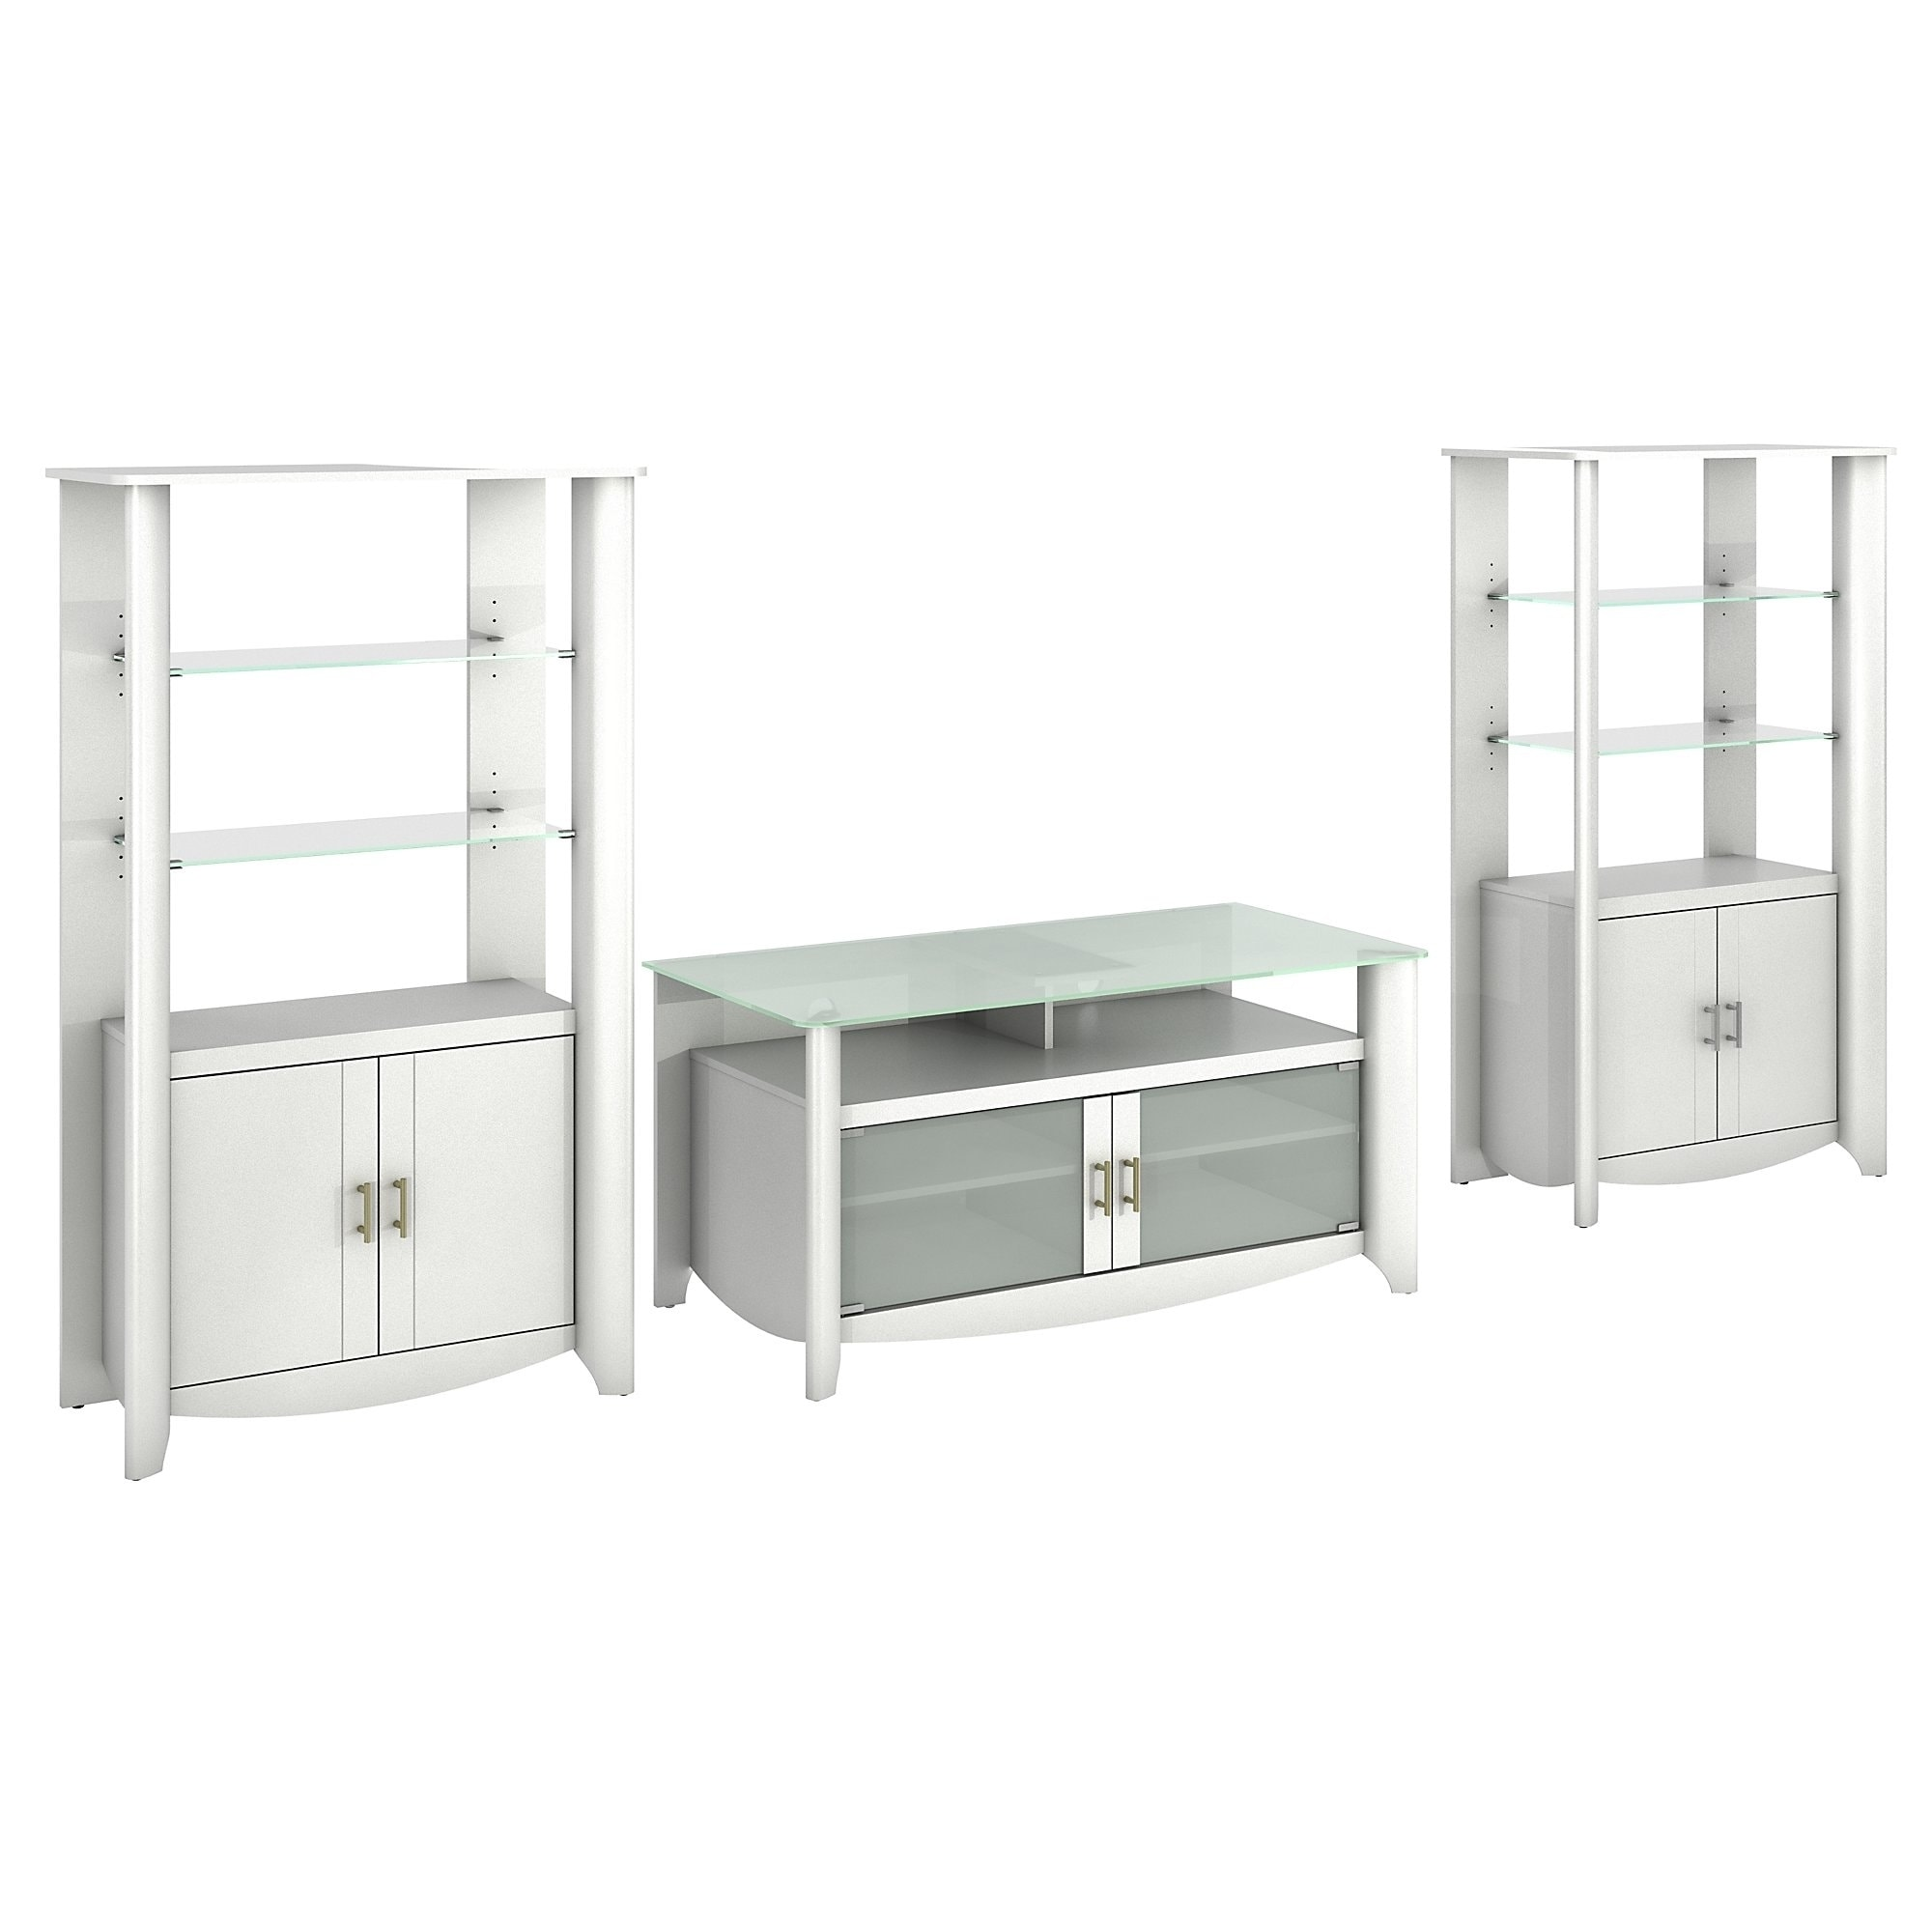 Shop Aero TV Stand and Set of 2 Tall Library Storage Cabinets with Doors - Free Shipping Today - Overstock.com - 9078539  sc 1 st  Overstock.com & Shop Aero TV Stand and Set of 2 Tall Library Storage Cabinets with ...